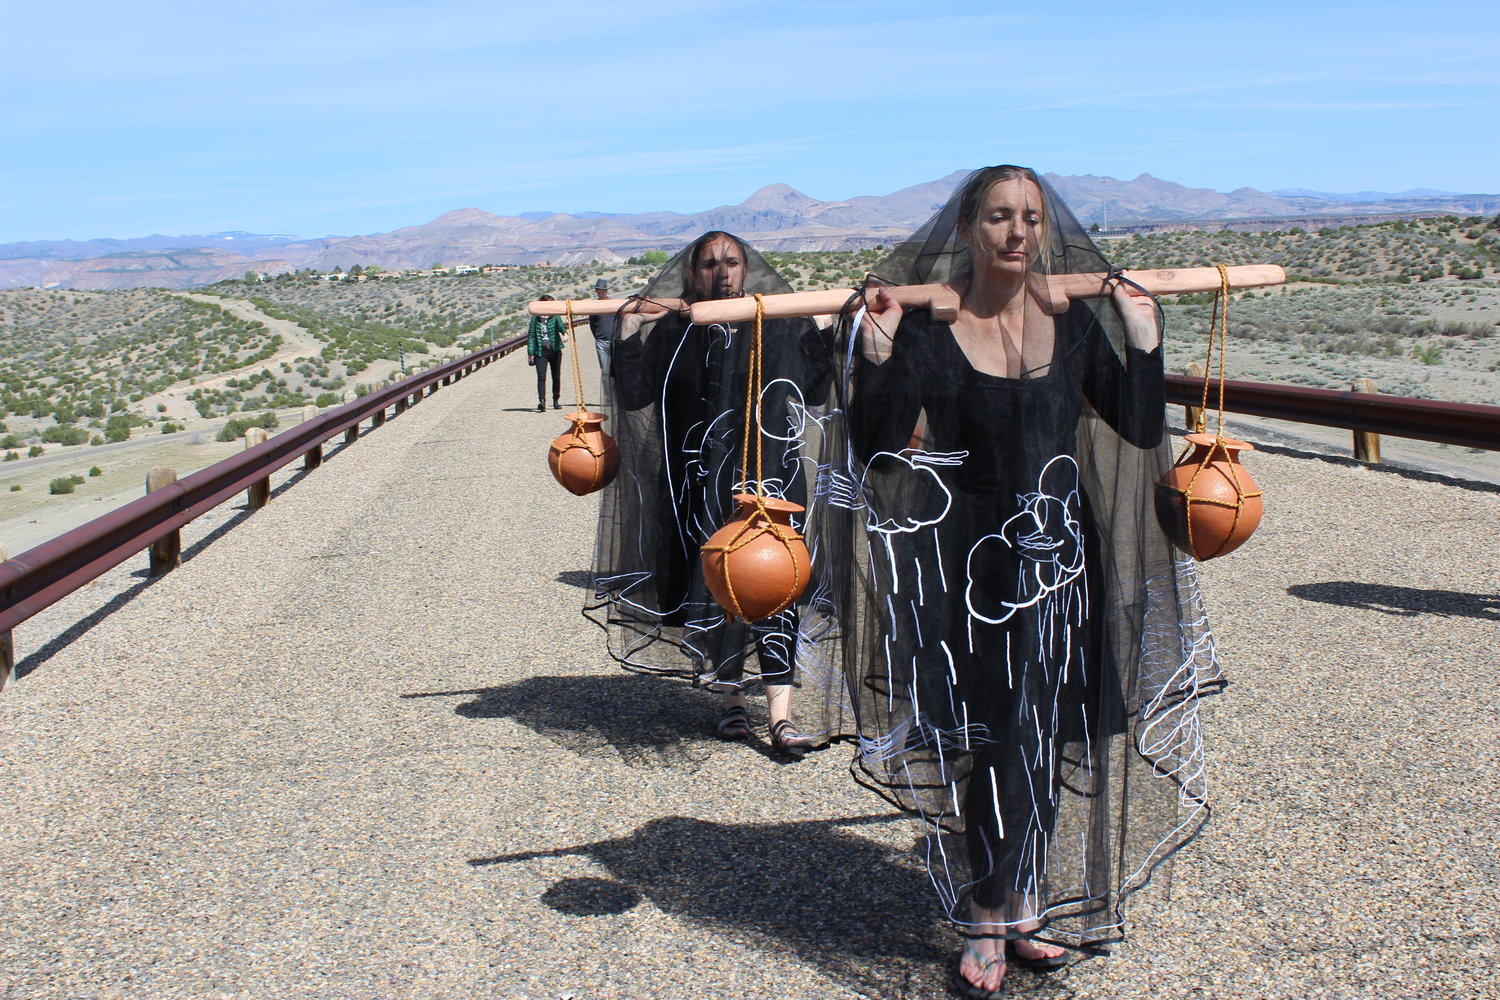 Walking Cochiti Dam, 2017 - a performative work created in partnership with community members of the Cochiti Pueblo, articulating the complexities of dam building on reservation lands in the USA, as part of the Reclamation Act of 1902 and 1960's Flood Control Act. The controversial Cochiti Dam was built in 1975 on the most sacred mountain and burial site in Cochiti Pueblo. The lake silt bed is now contaminated with waste plutonium washed down the Rio Grande from Los Alamos 'Atomic City', where the US government research programme, 'The Manhattan Project' produced the first atomic bombs between 1942 – 45.    In recognition of water as a living body, walking in this performance brings into focus the injured landscape of human interventions into sacred natural bodies.